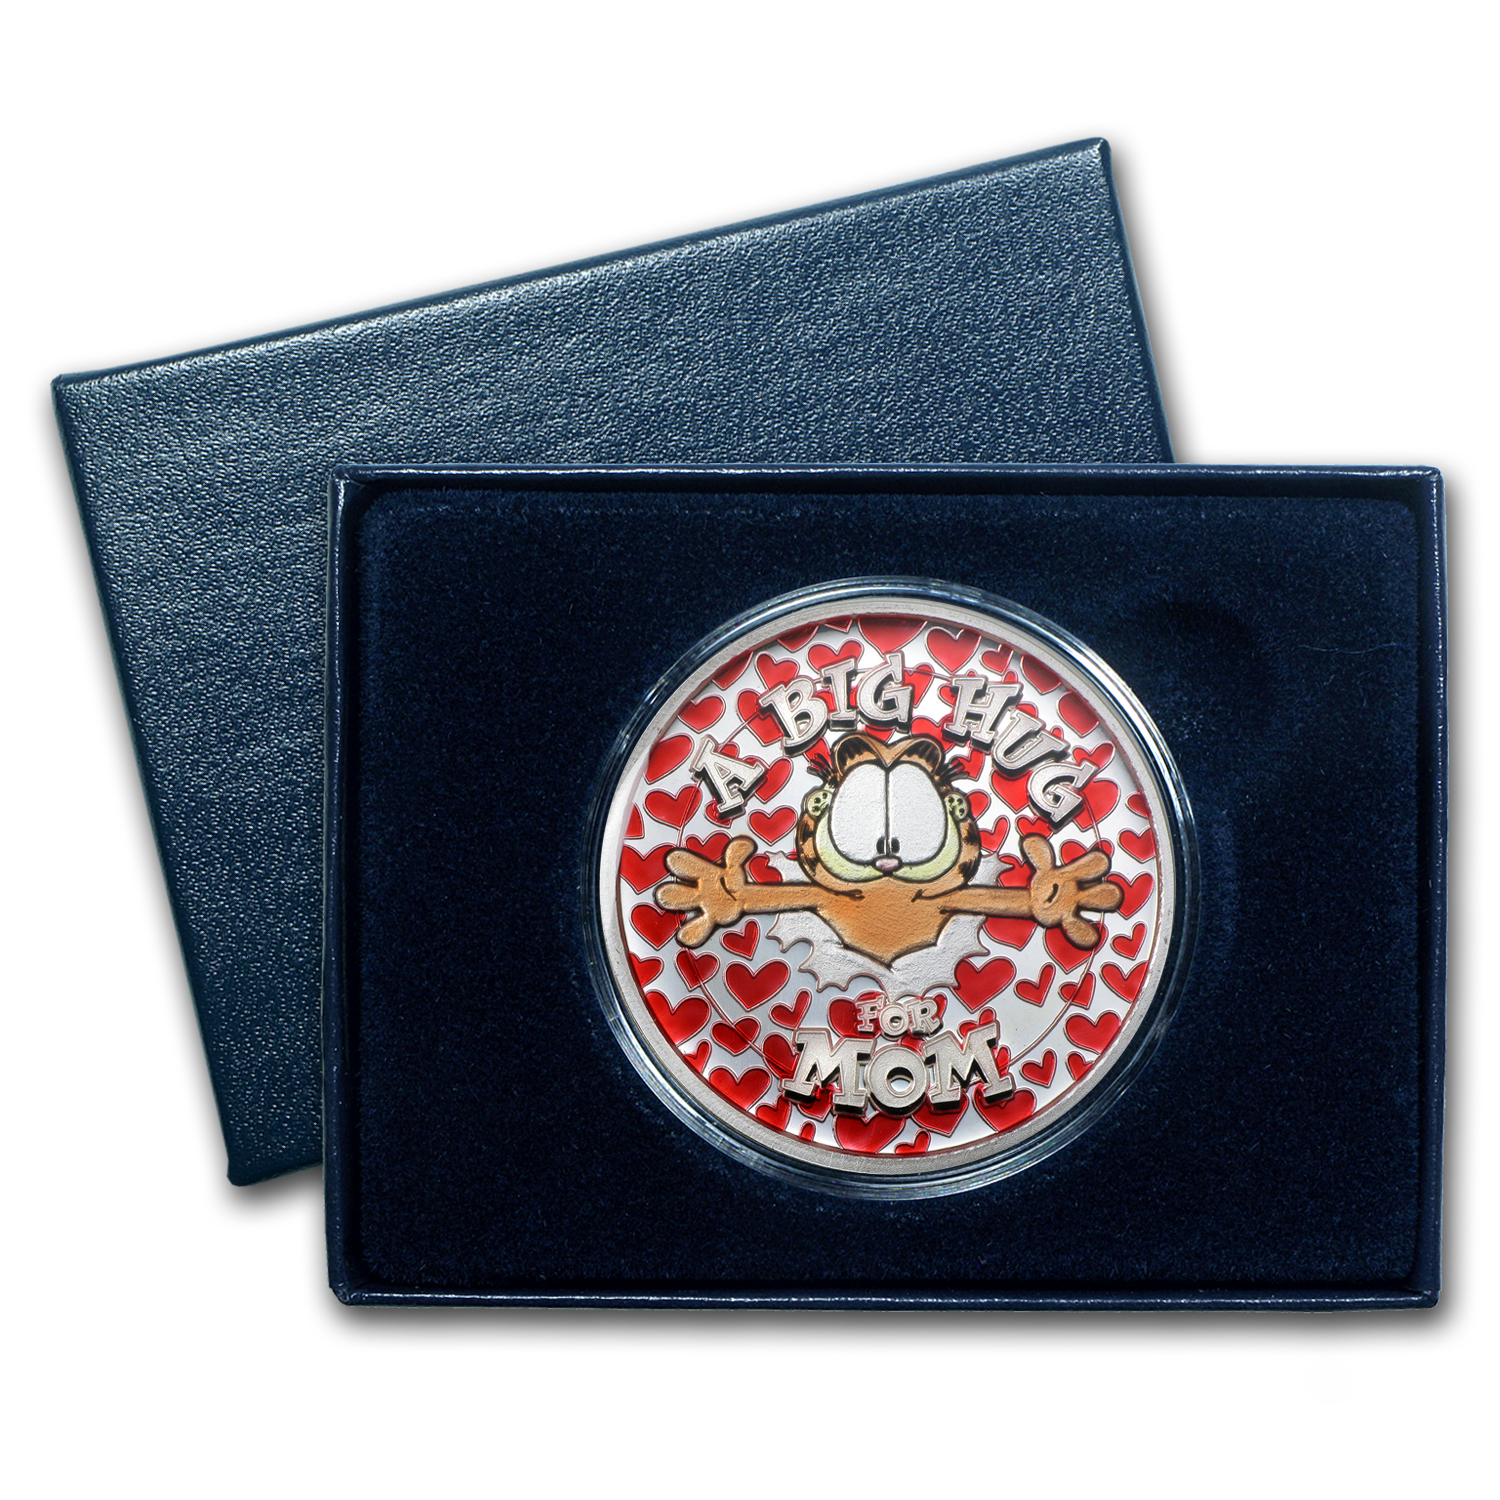 1 oz Silver Round - Hugs for Mom ( Enameled w/Box & Capsule)